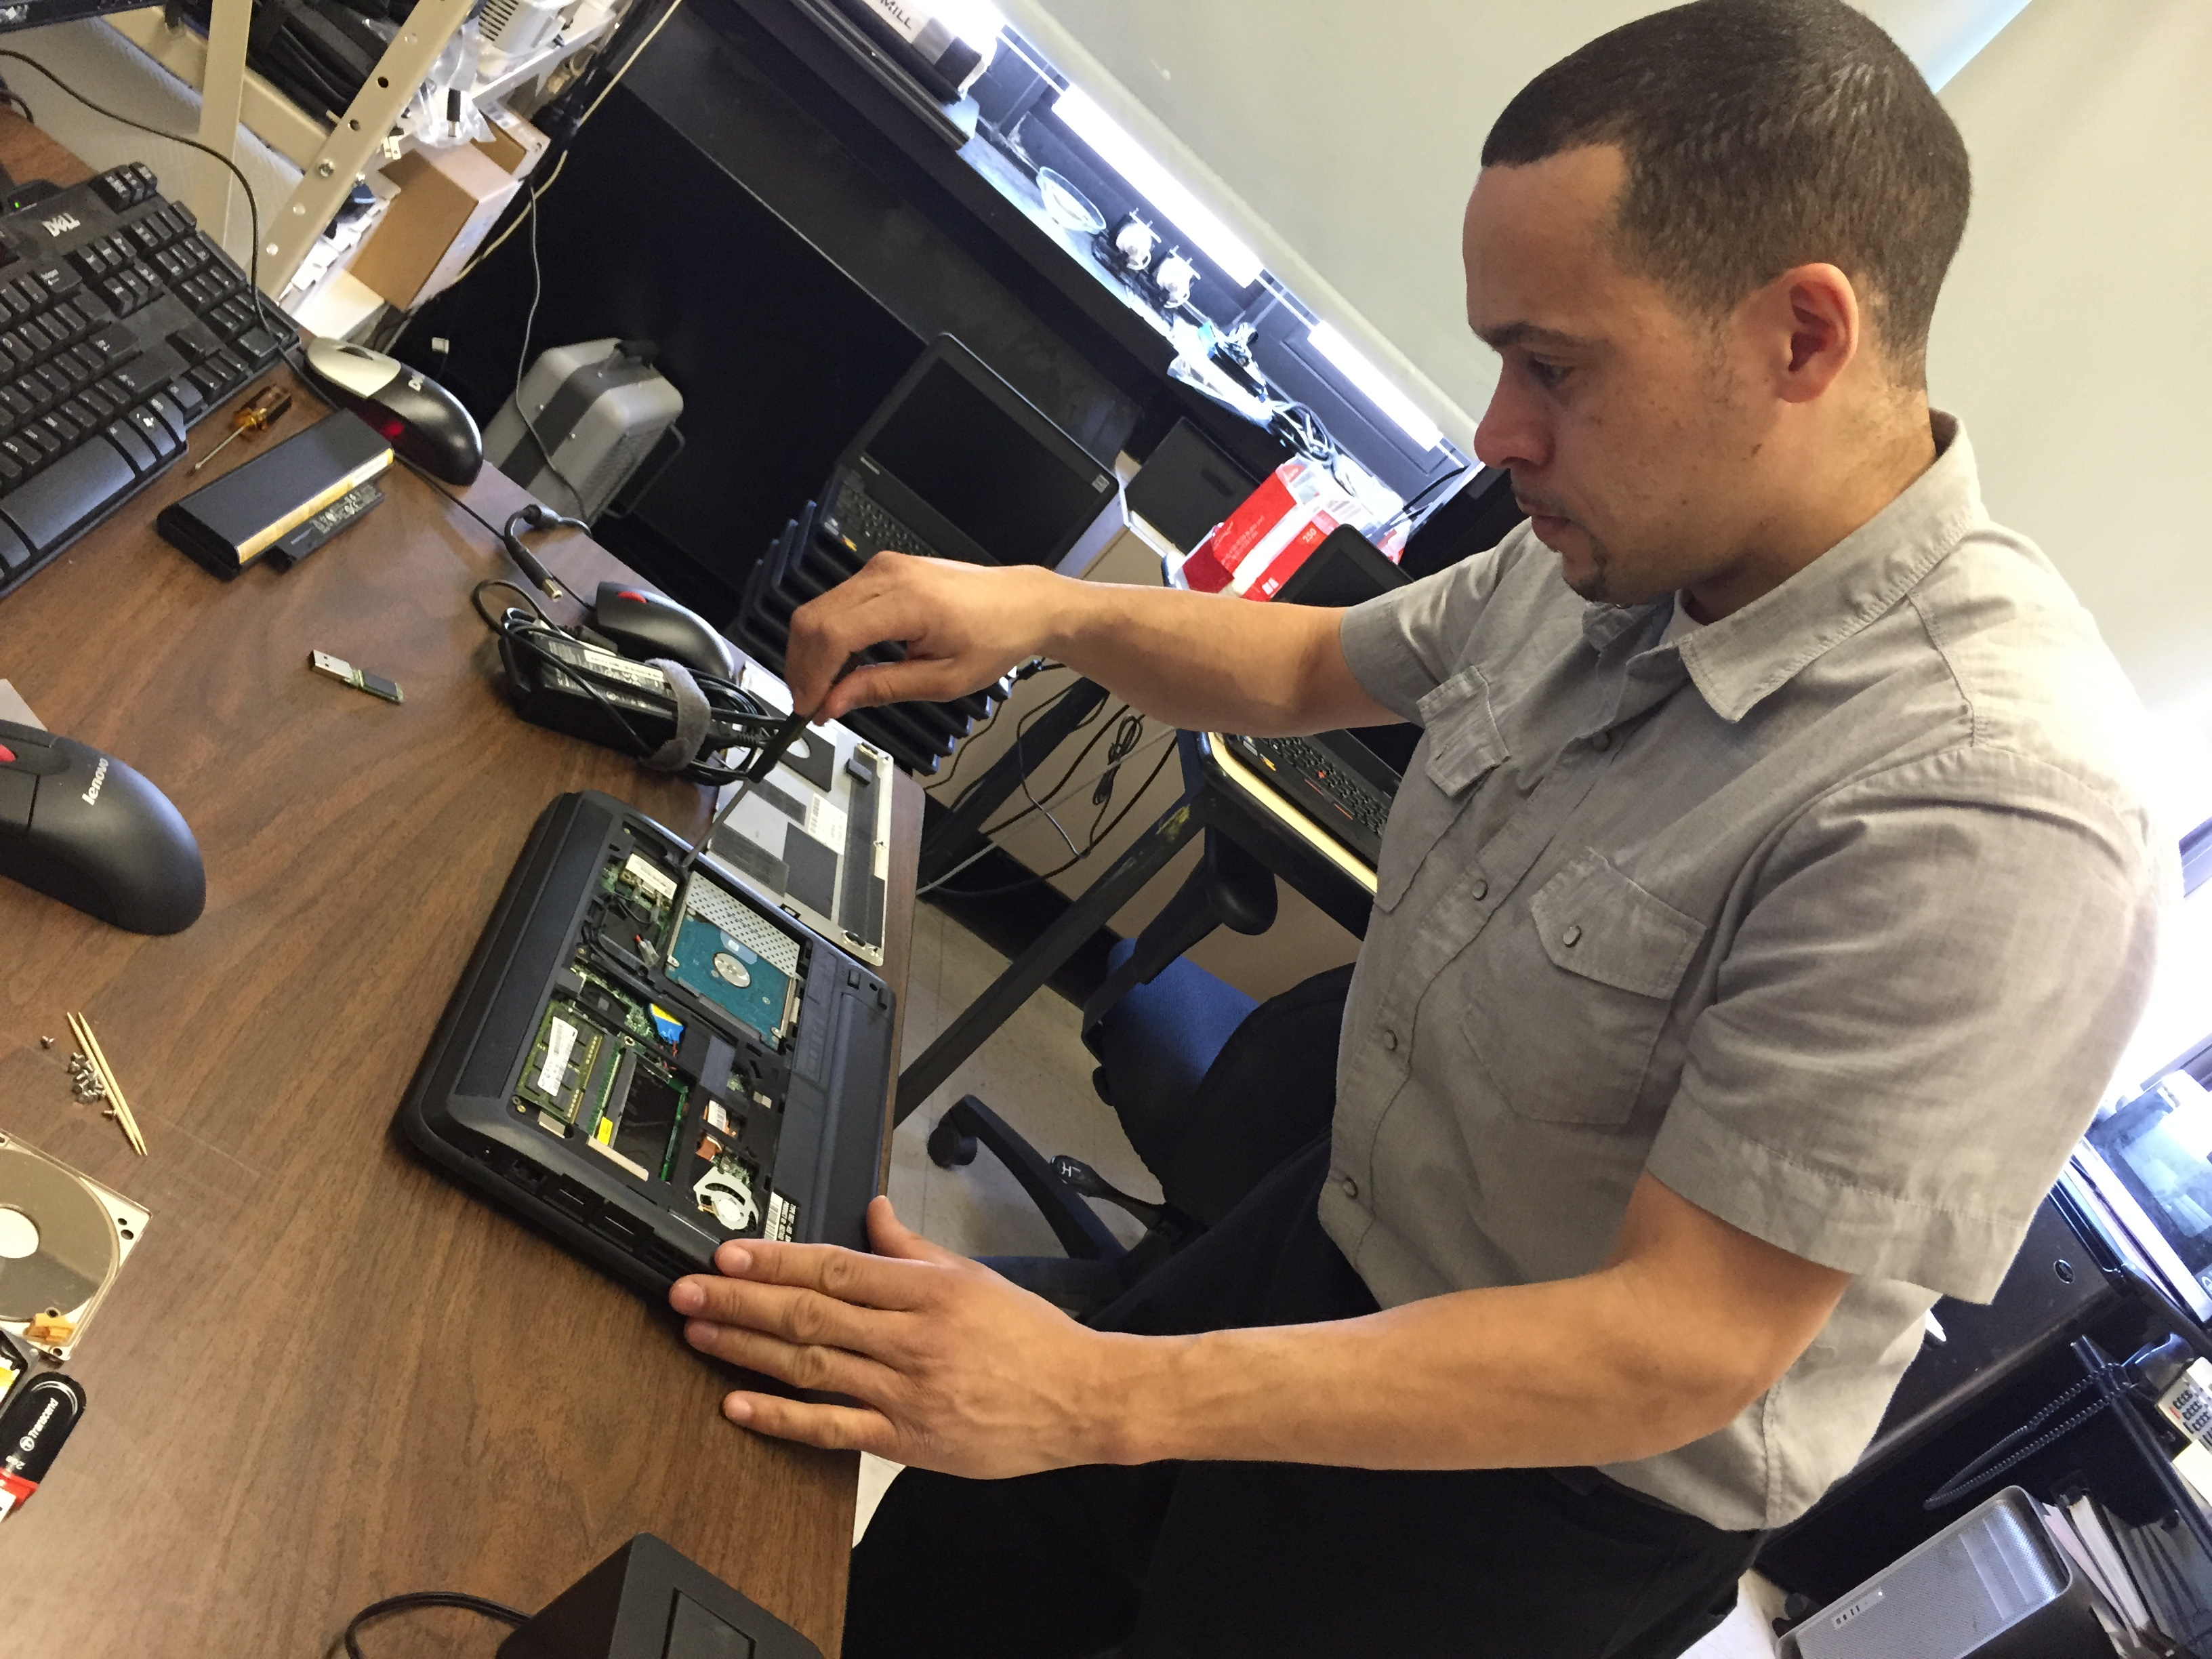 computer technician loves keeping students and staff wired